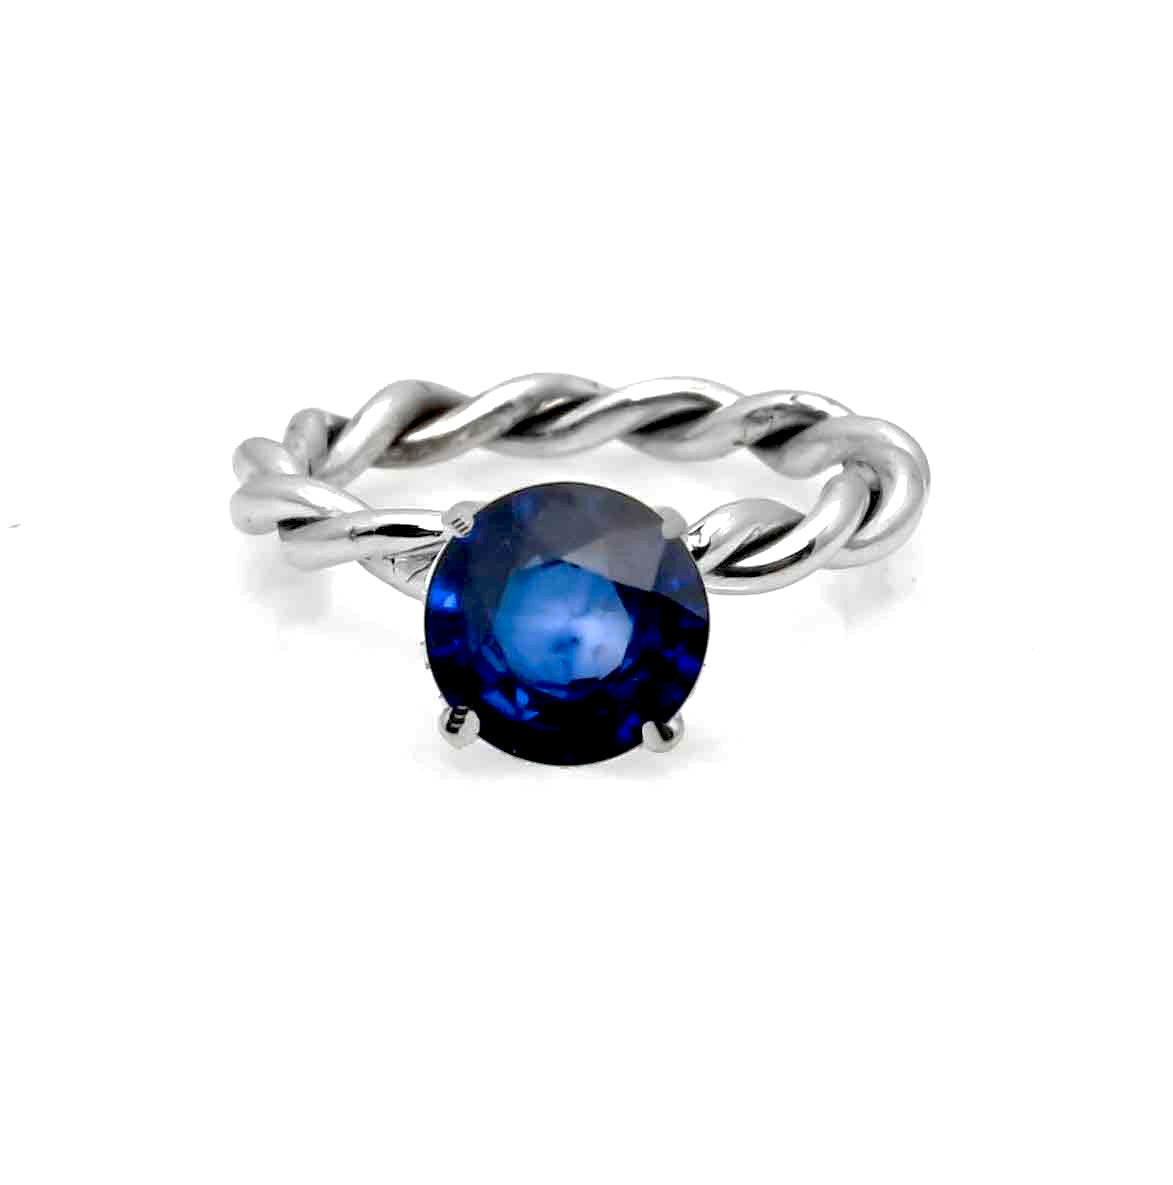 Unique Hand Twisted Cable Rope Engagement Ring and with 1.4 Carat Blue Sapphire Gemstone, 14k White Gold, Stacking Ring - SP14ROP25ER